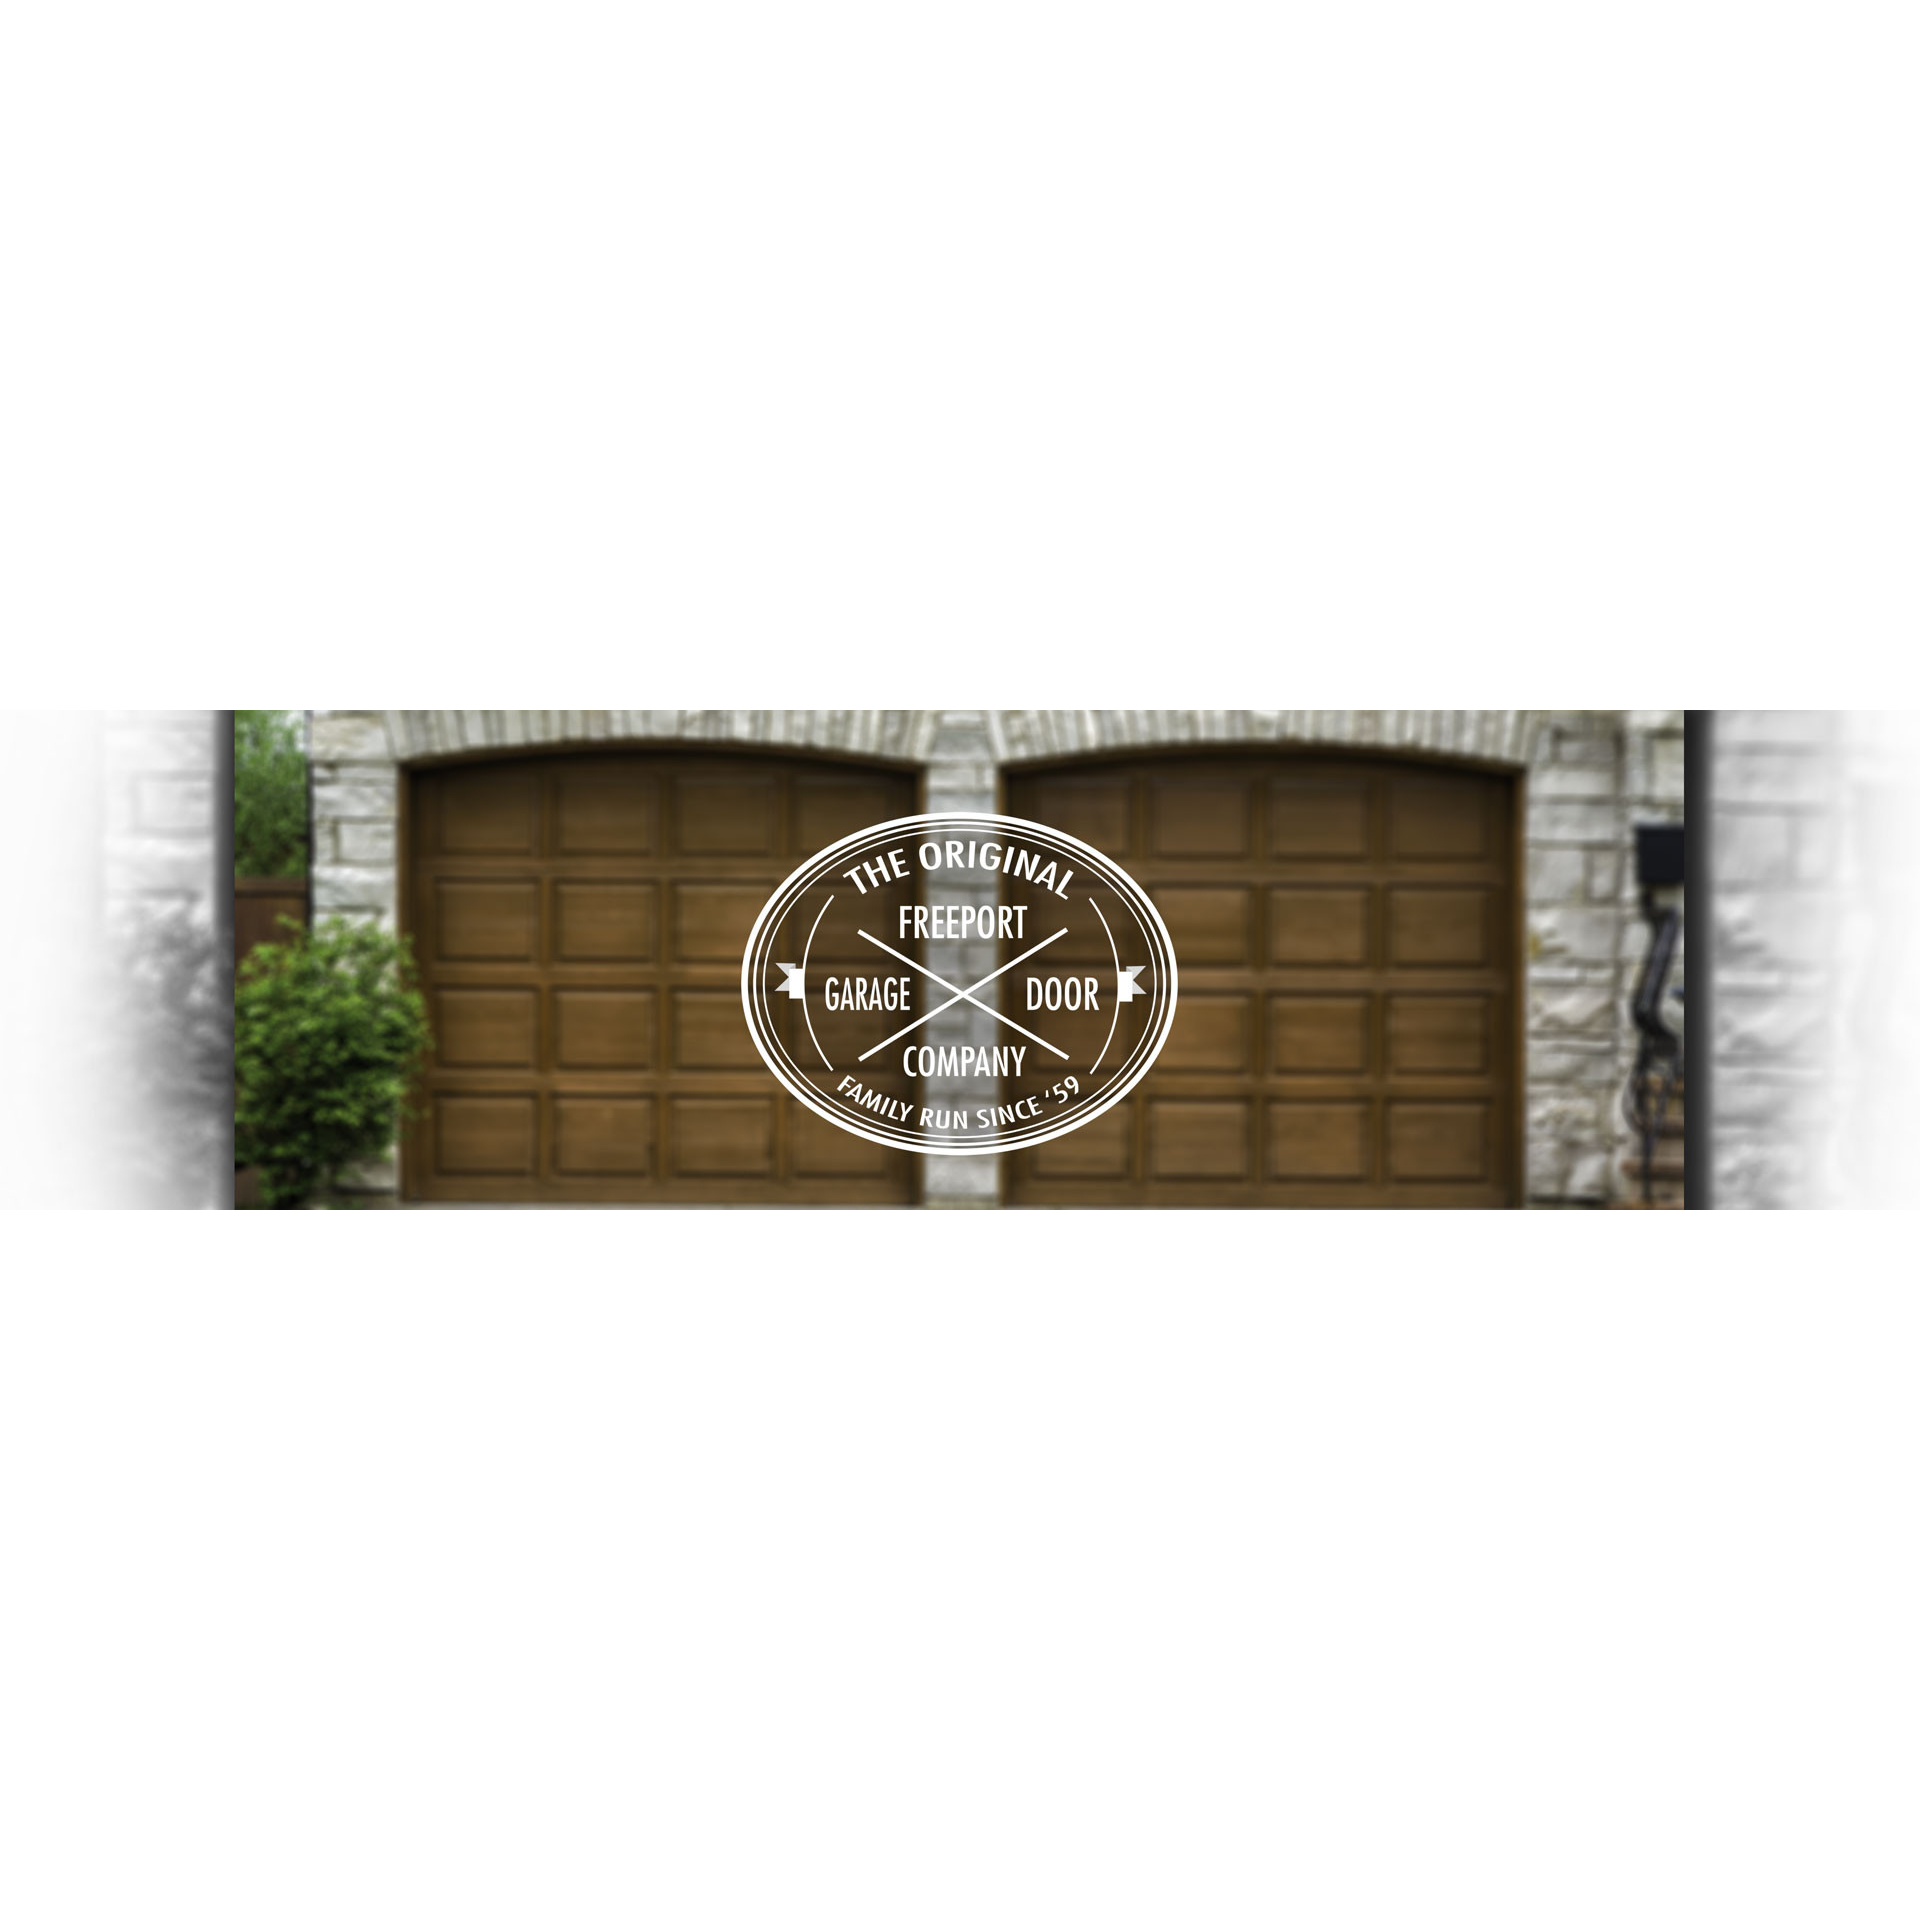 Freeport Garage Door Company Inc.